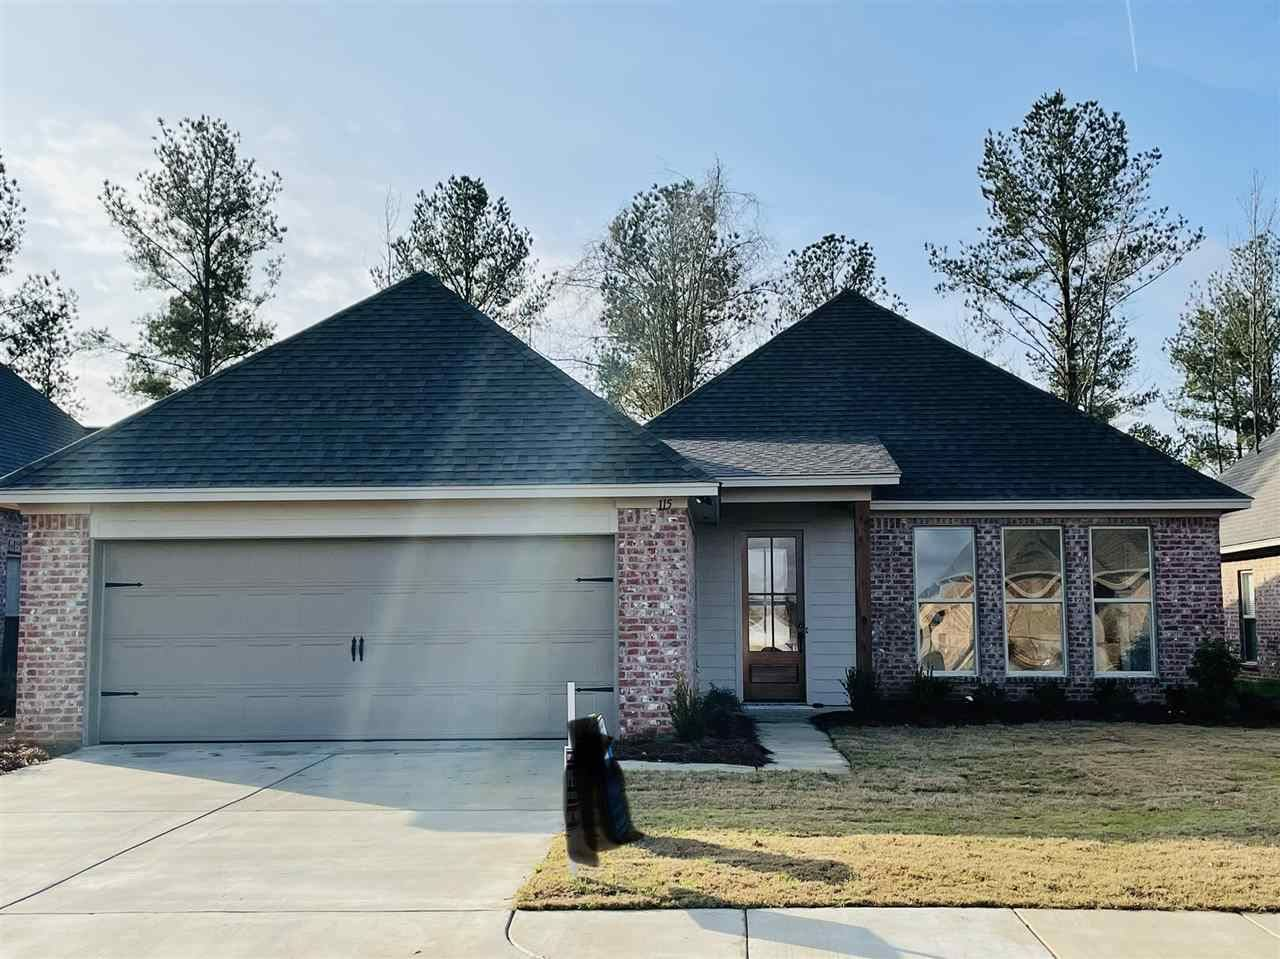 115 ST CROIX LN, Madison, MS 39110 - MLS#: 335941